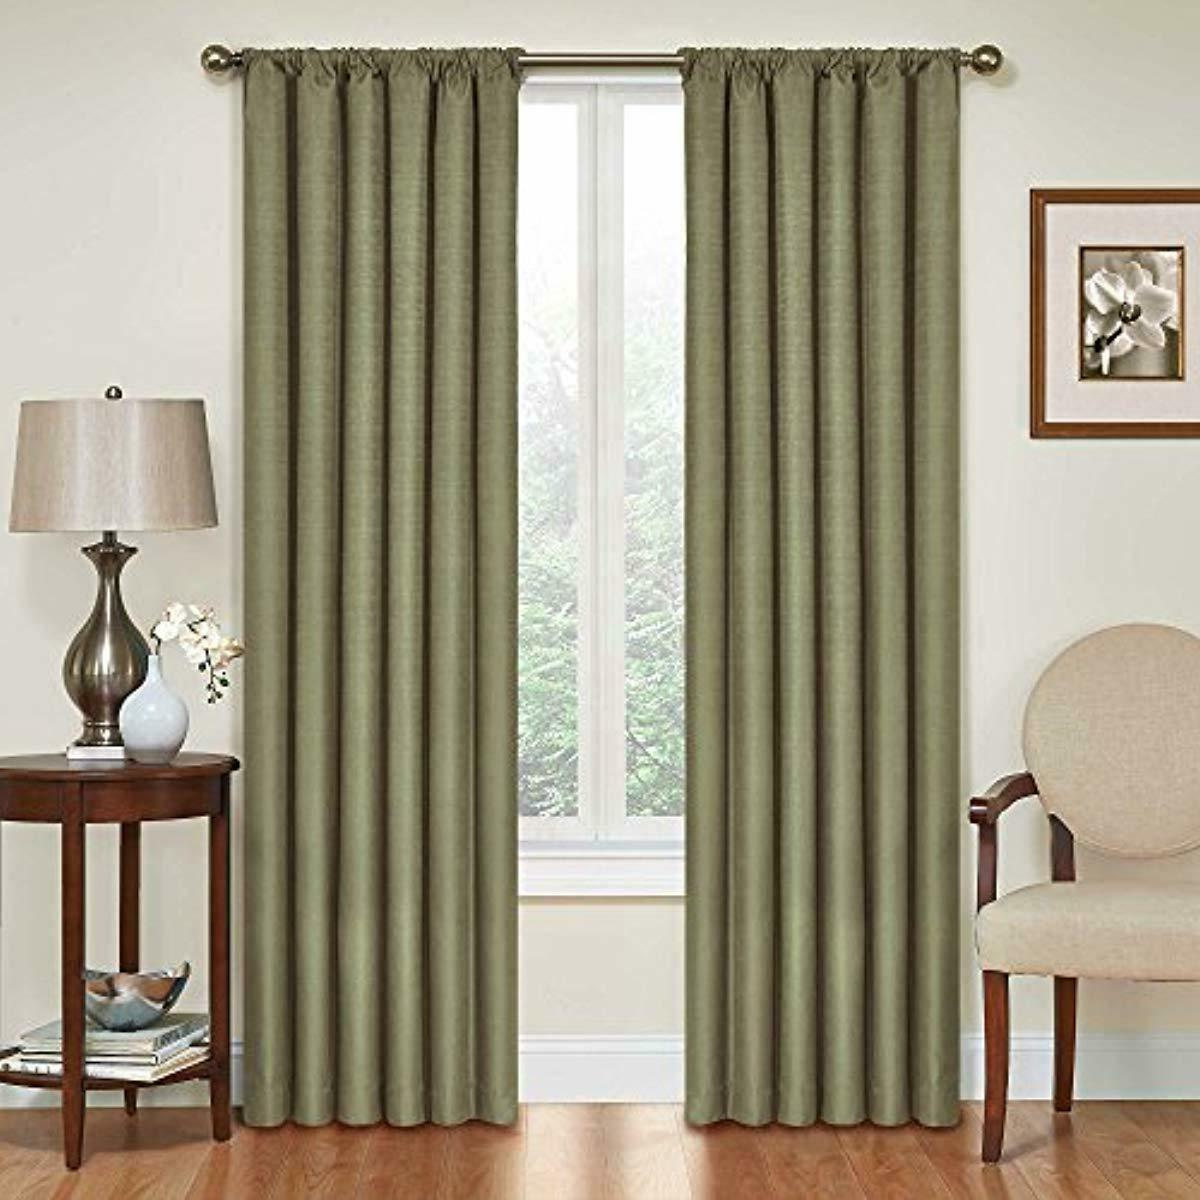 blackout curtains thermal curtain single panel rod